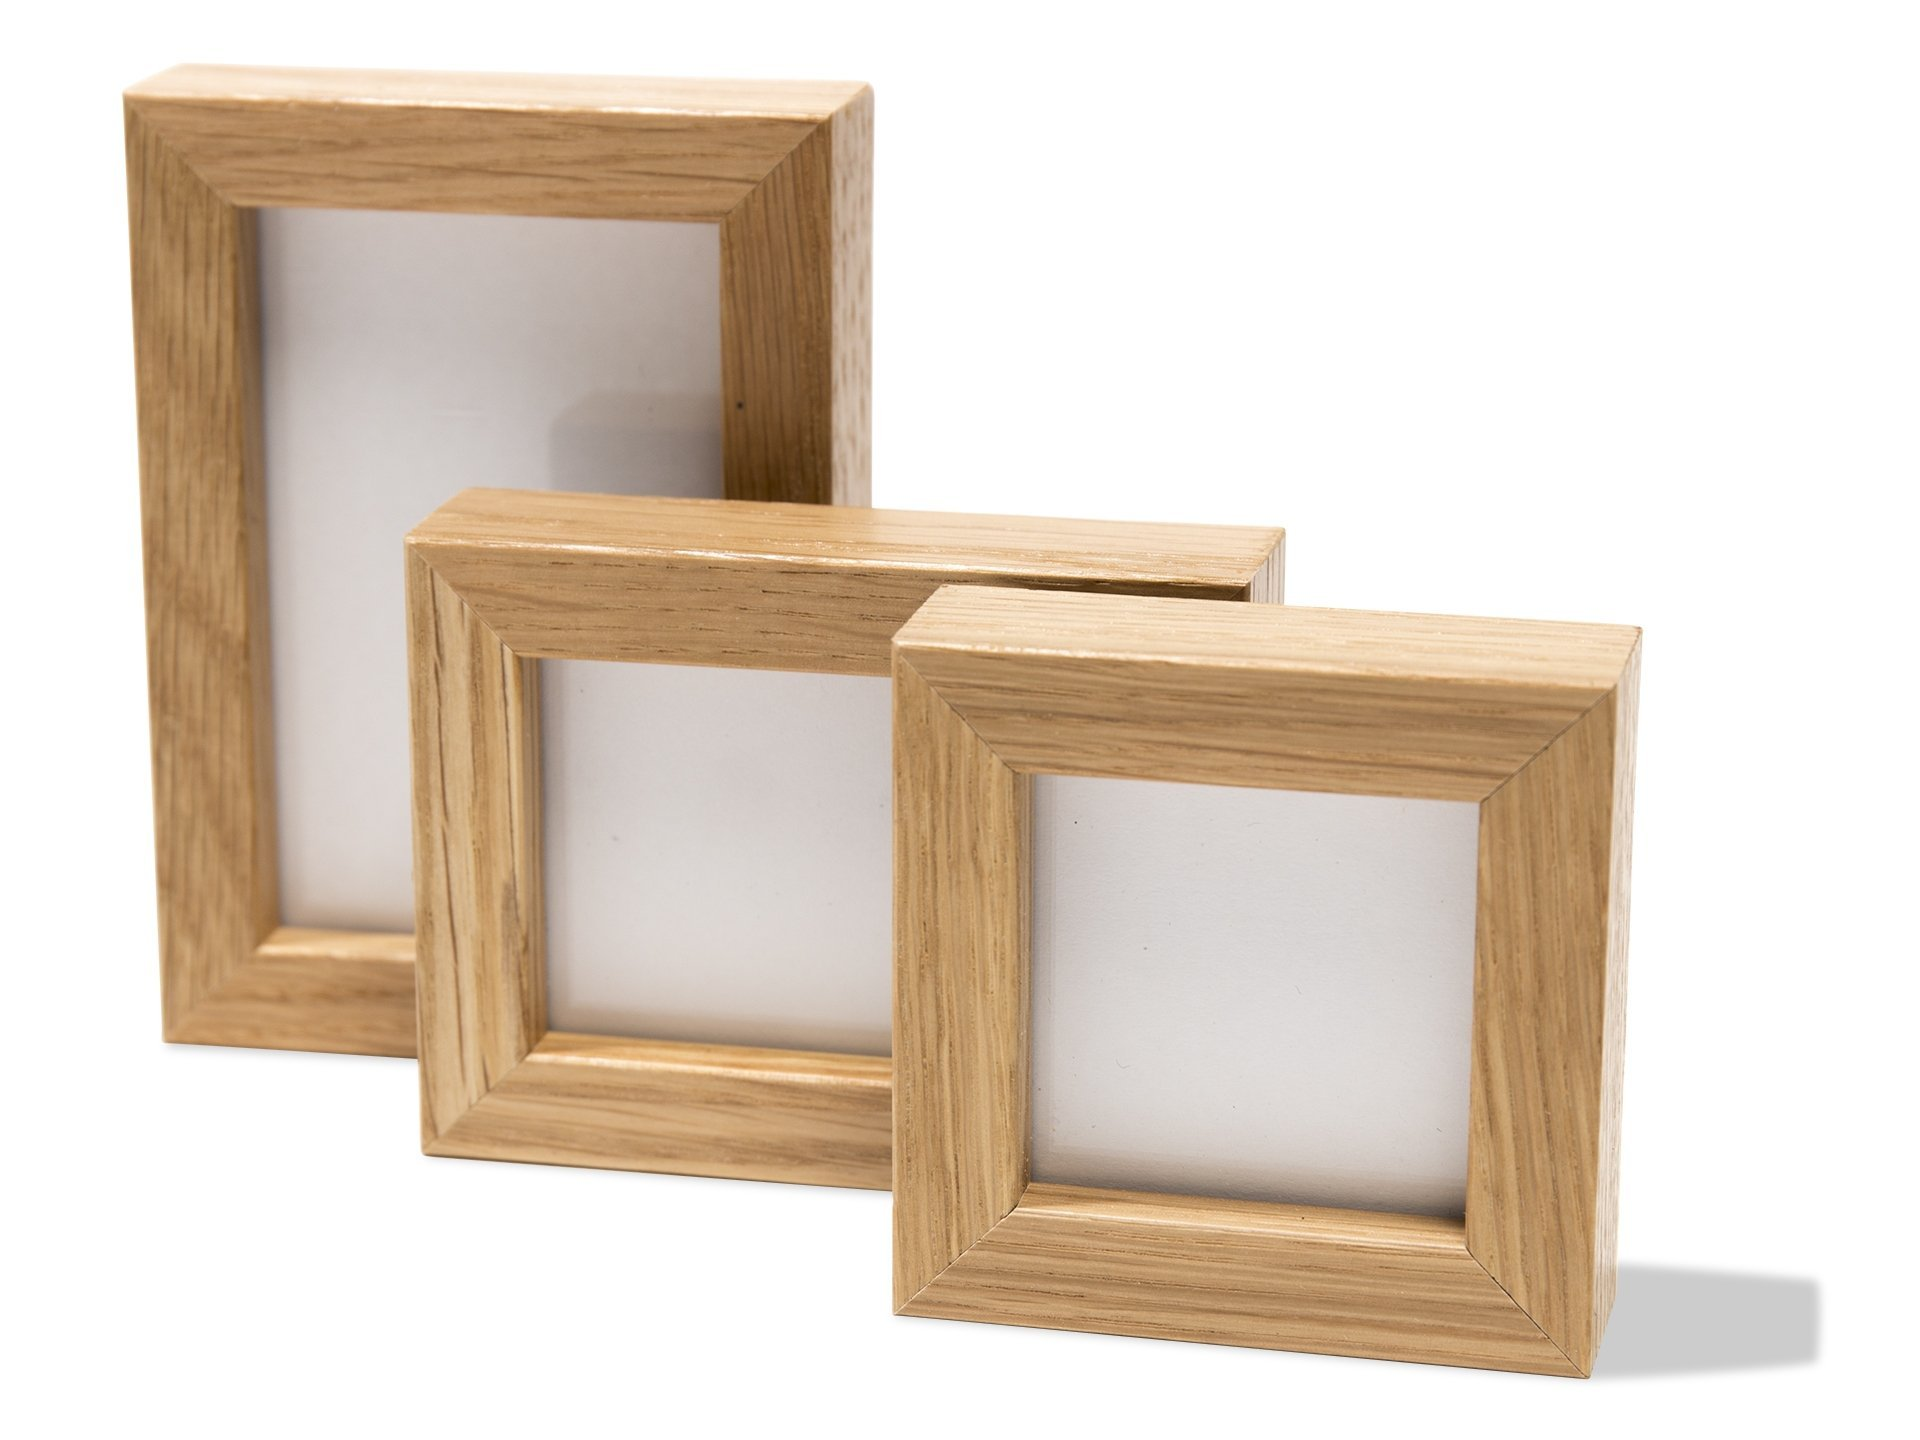 Bilderrahmen 60x60 Buy Mini Frame Natural Oak Online At Modulor